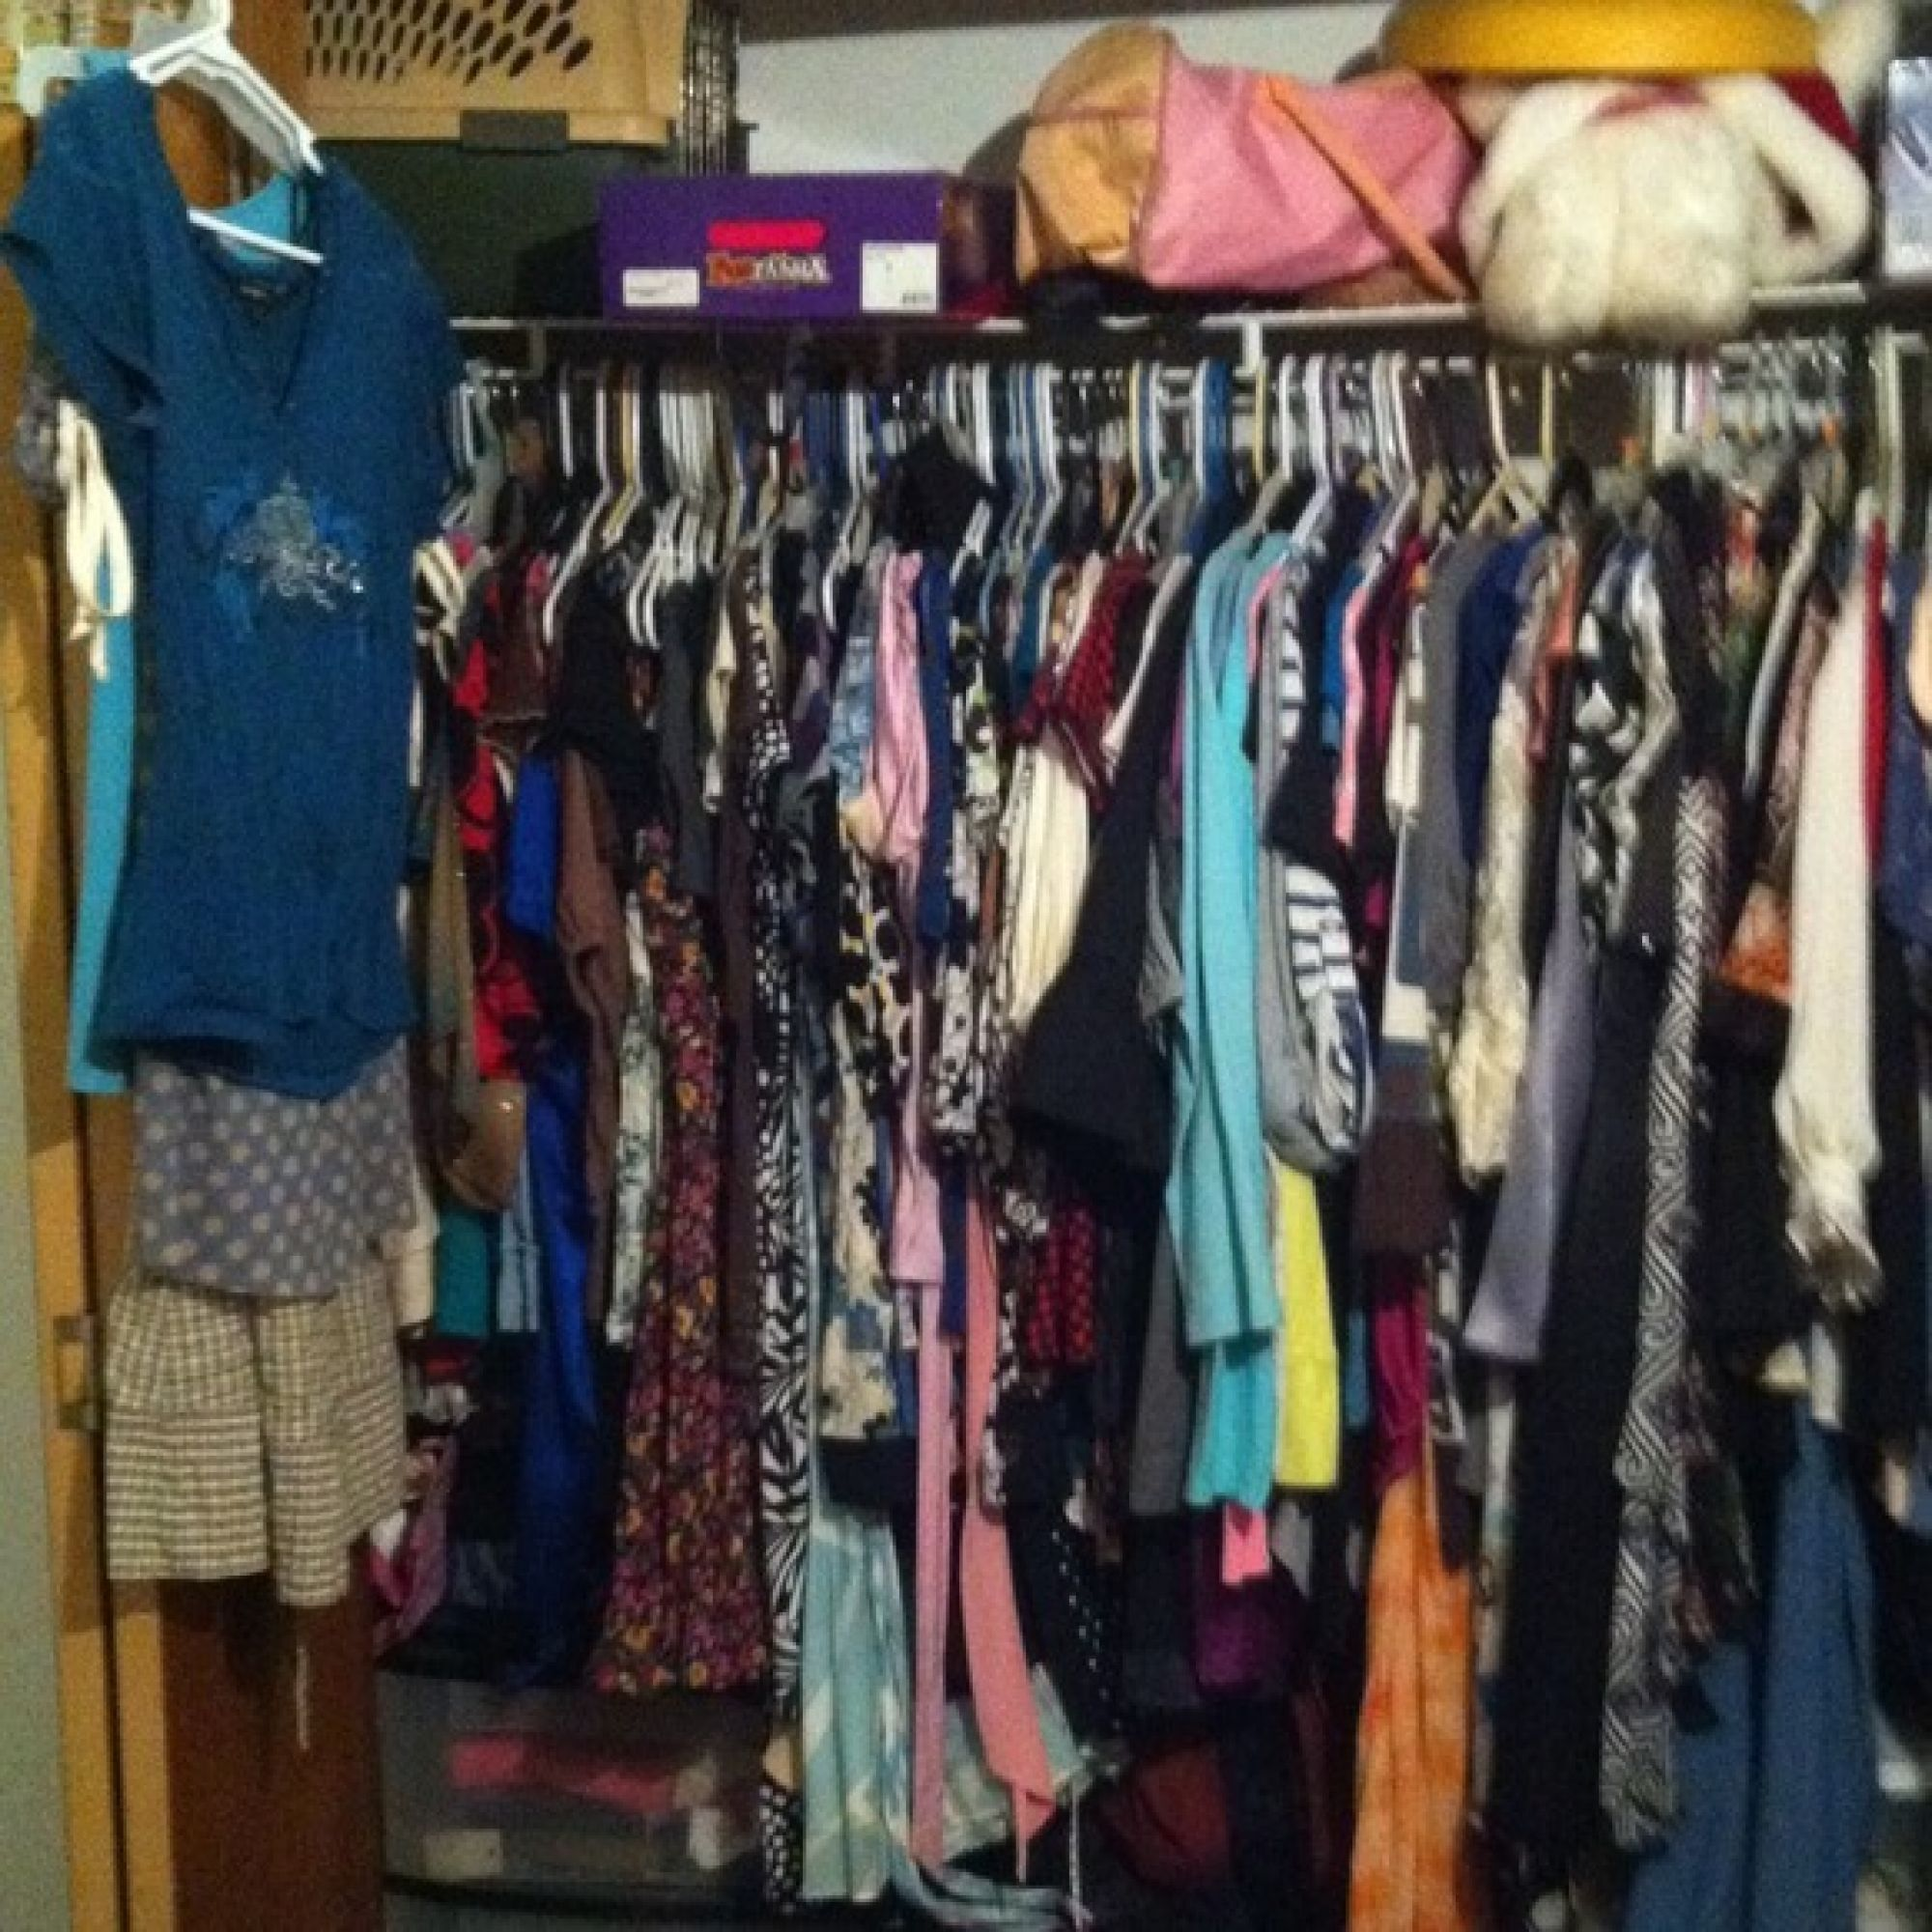 How packed is your closet? (Image: Poshmark)